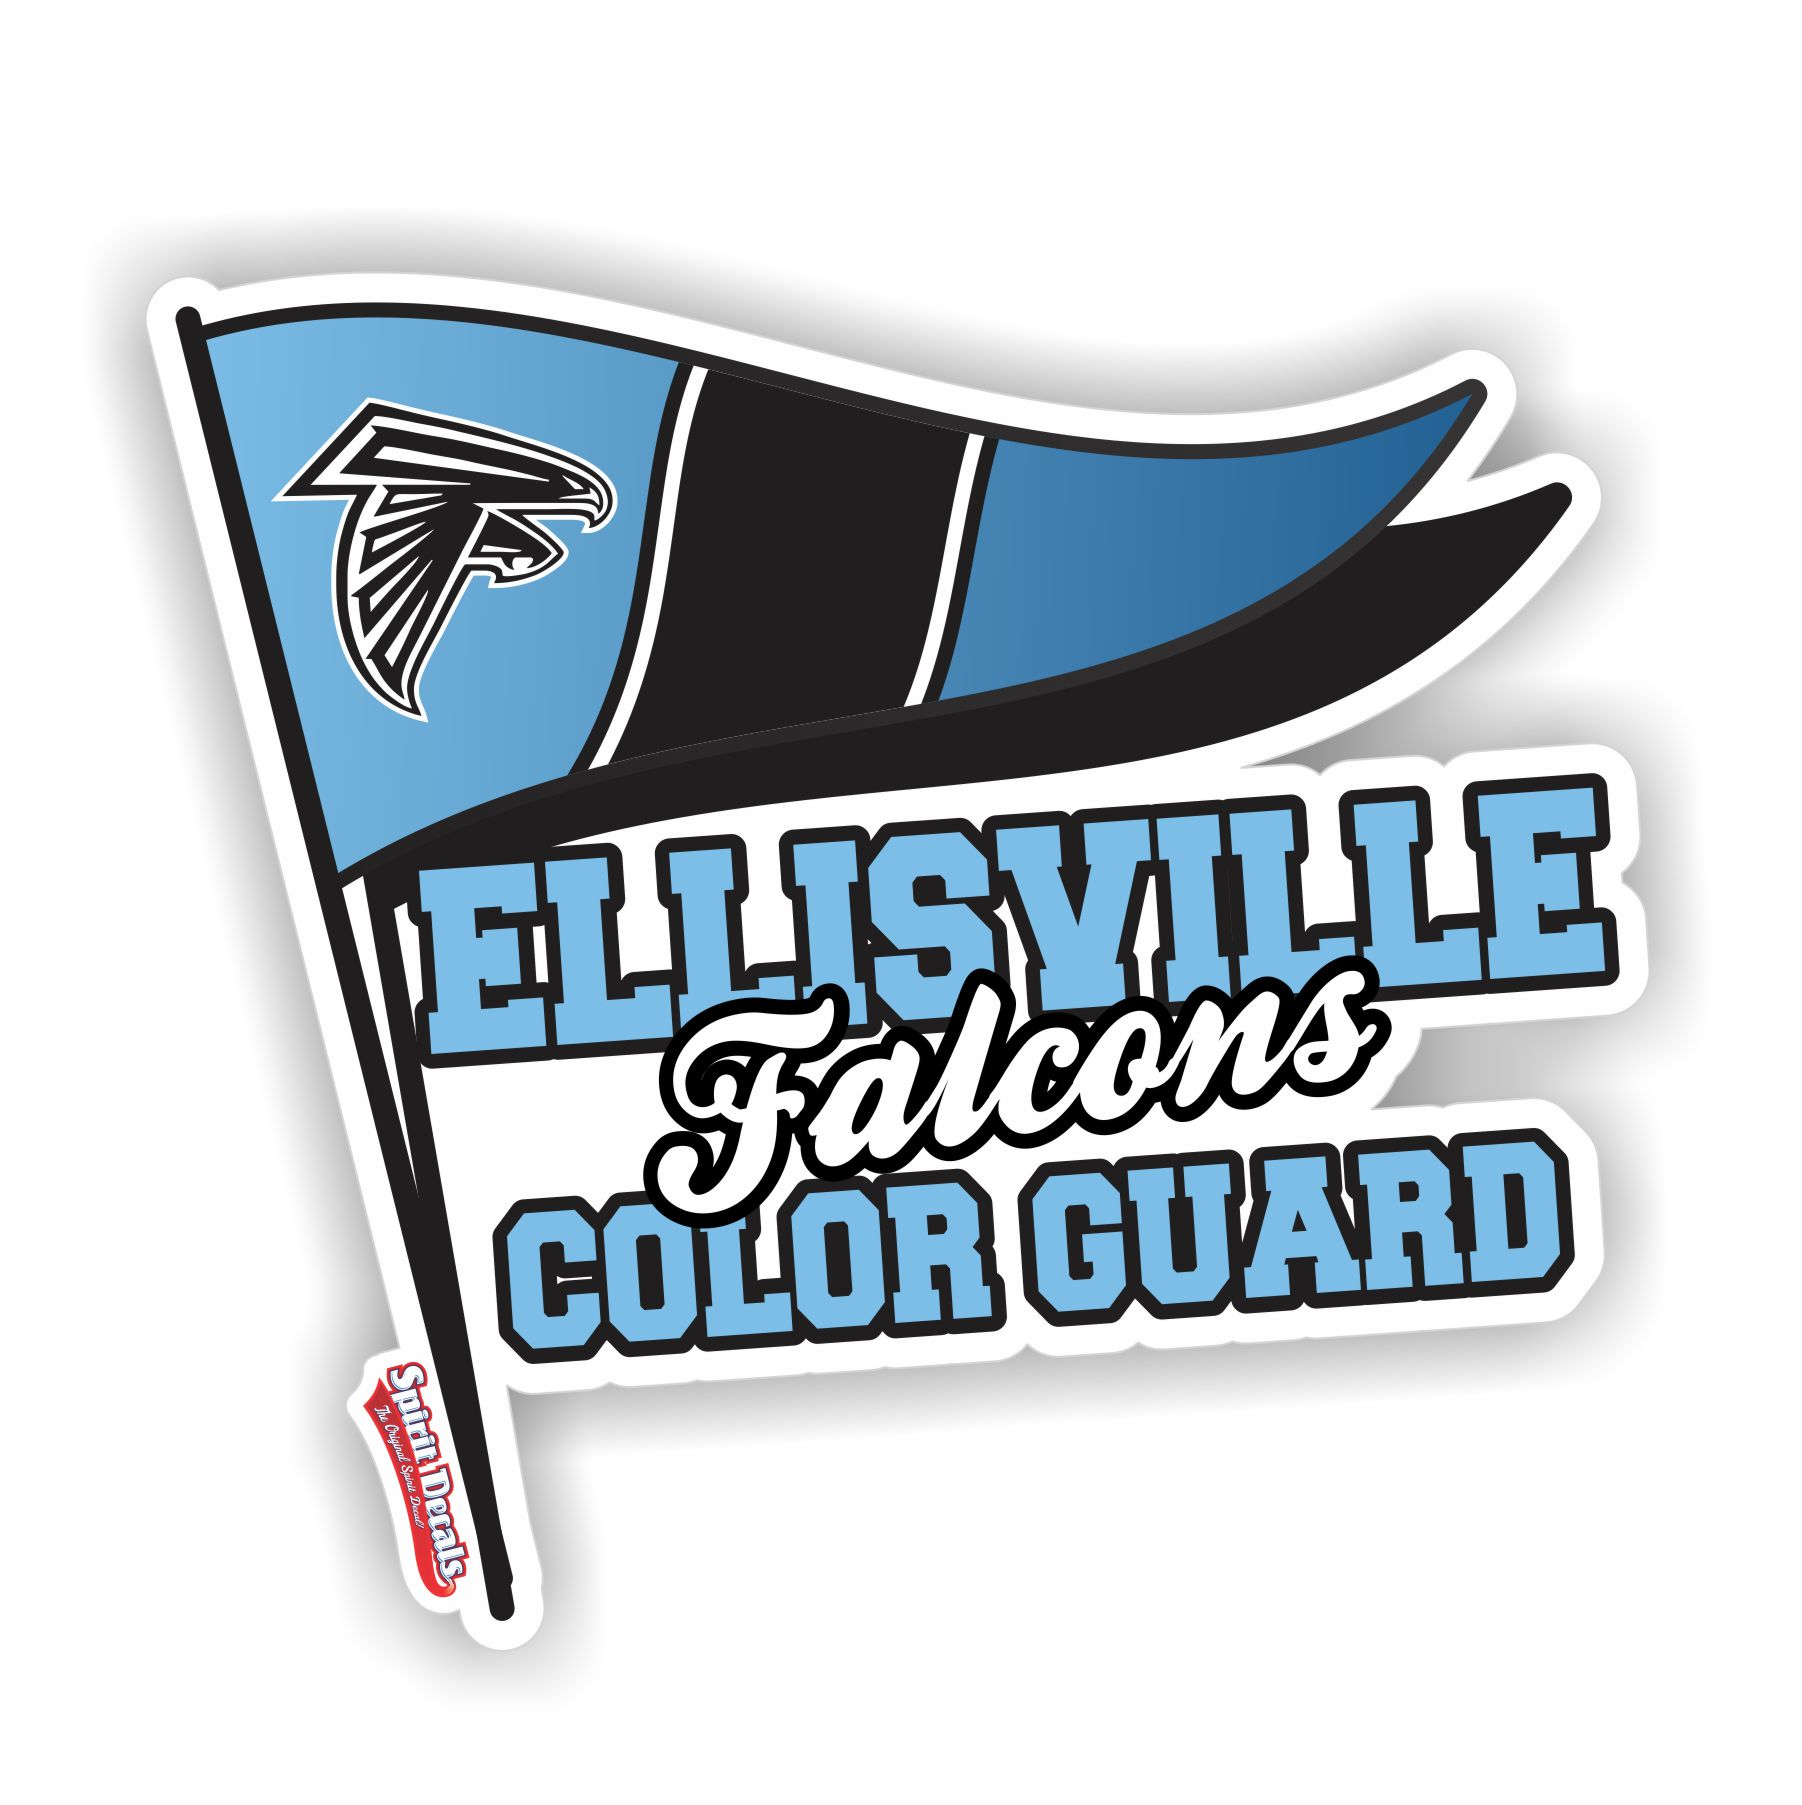 colorguard If color guard is flag dancing then football may as well be called running ball catching it's not hard do some research, especially if you're showing a dad going to his daughter's competition he's gonna.